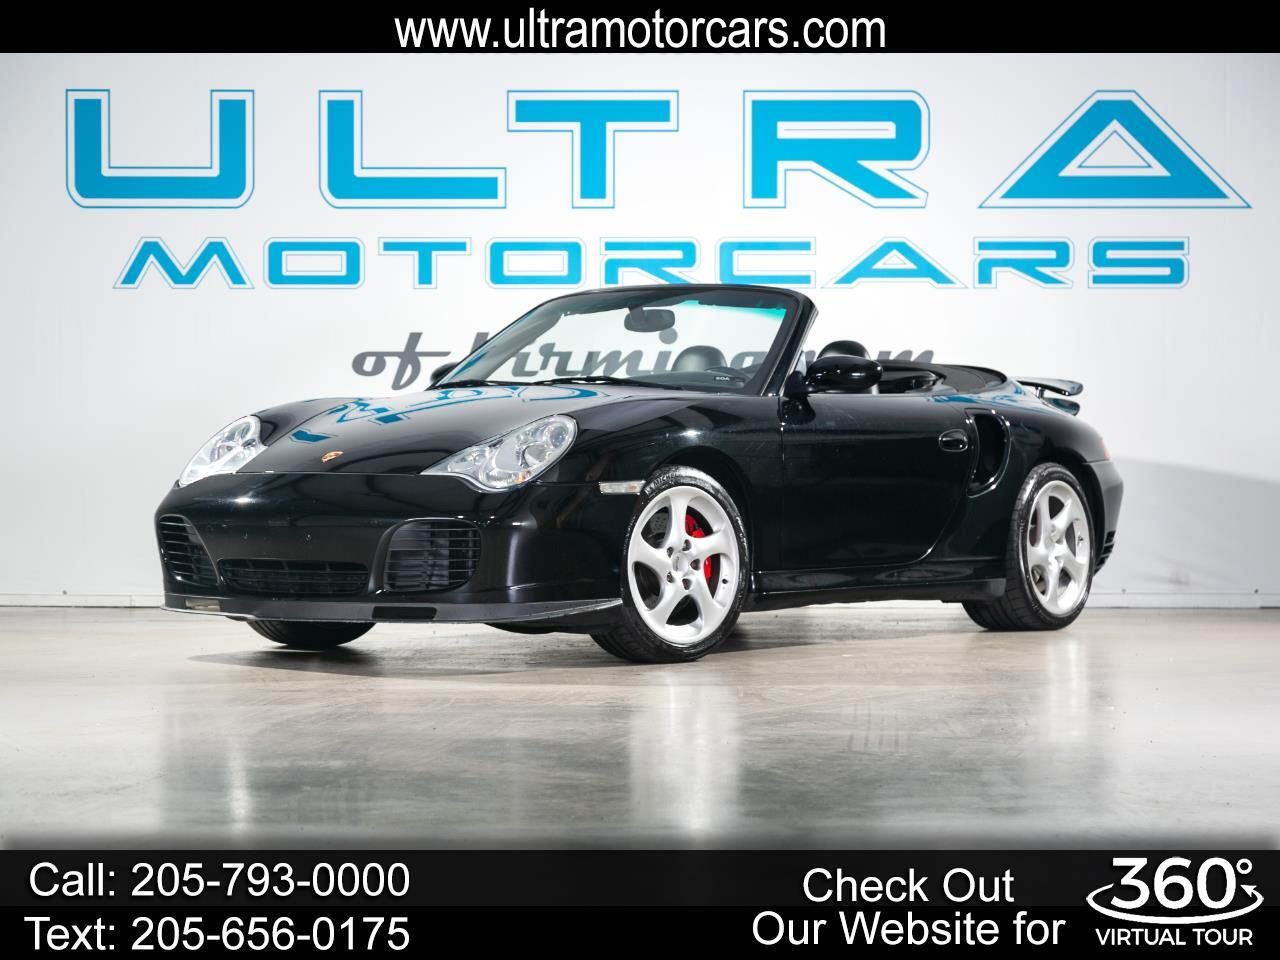 Porsche 911 2dr Cabriolet Turbo 6-Spd Manual 2004